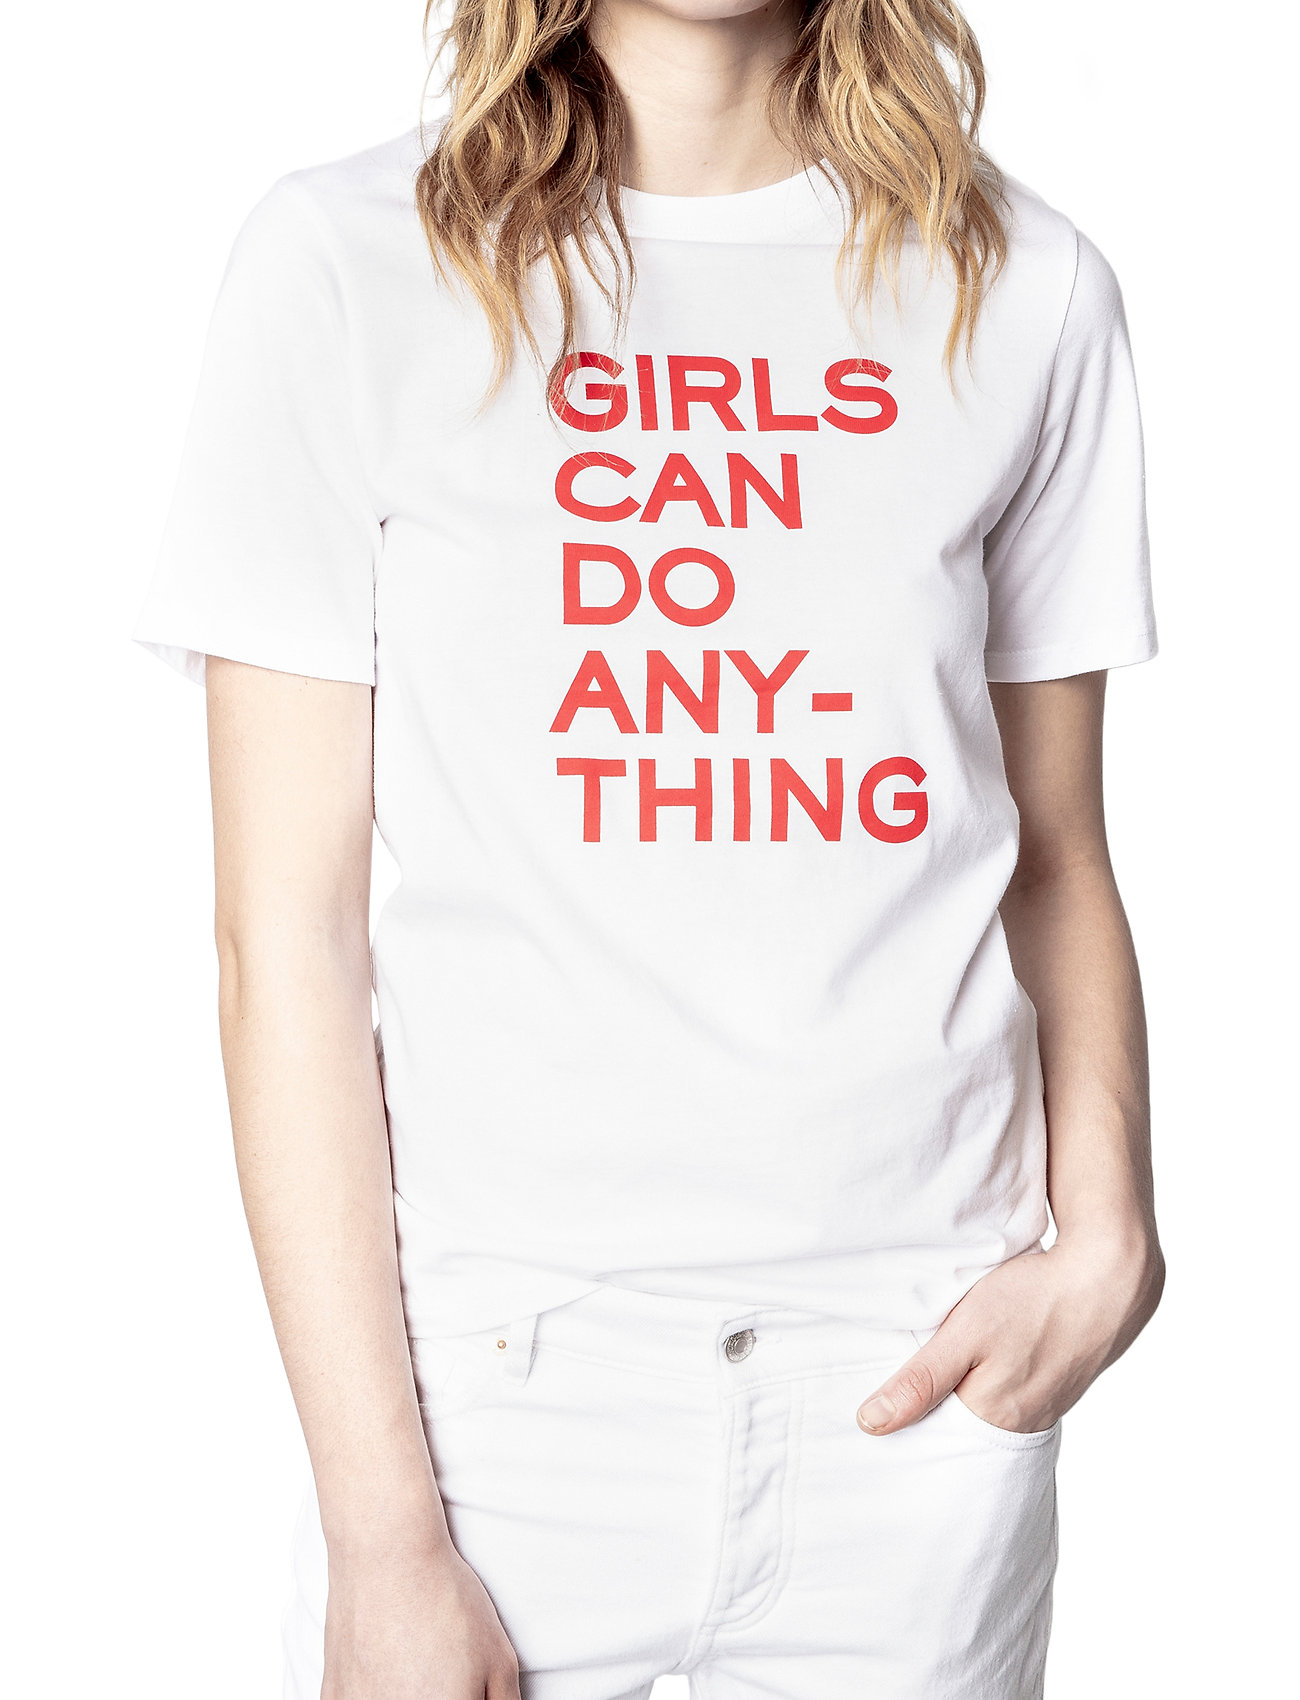 Zadig & Voltaire - BELLA COTTON INTERLOCK PRINTED T-SHIRT - t-shirts - white/red - 0